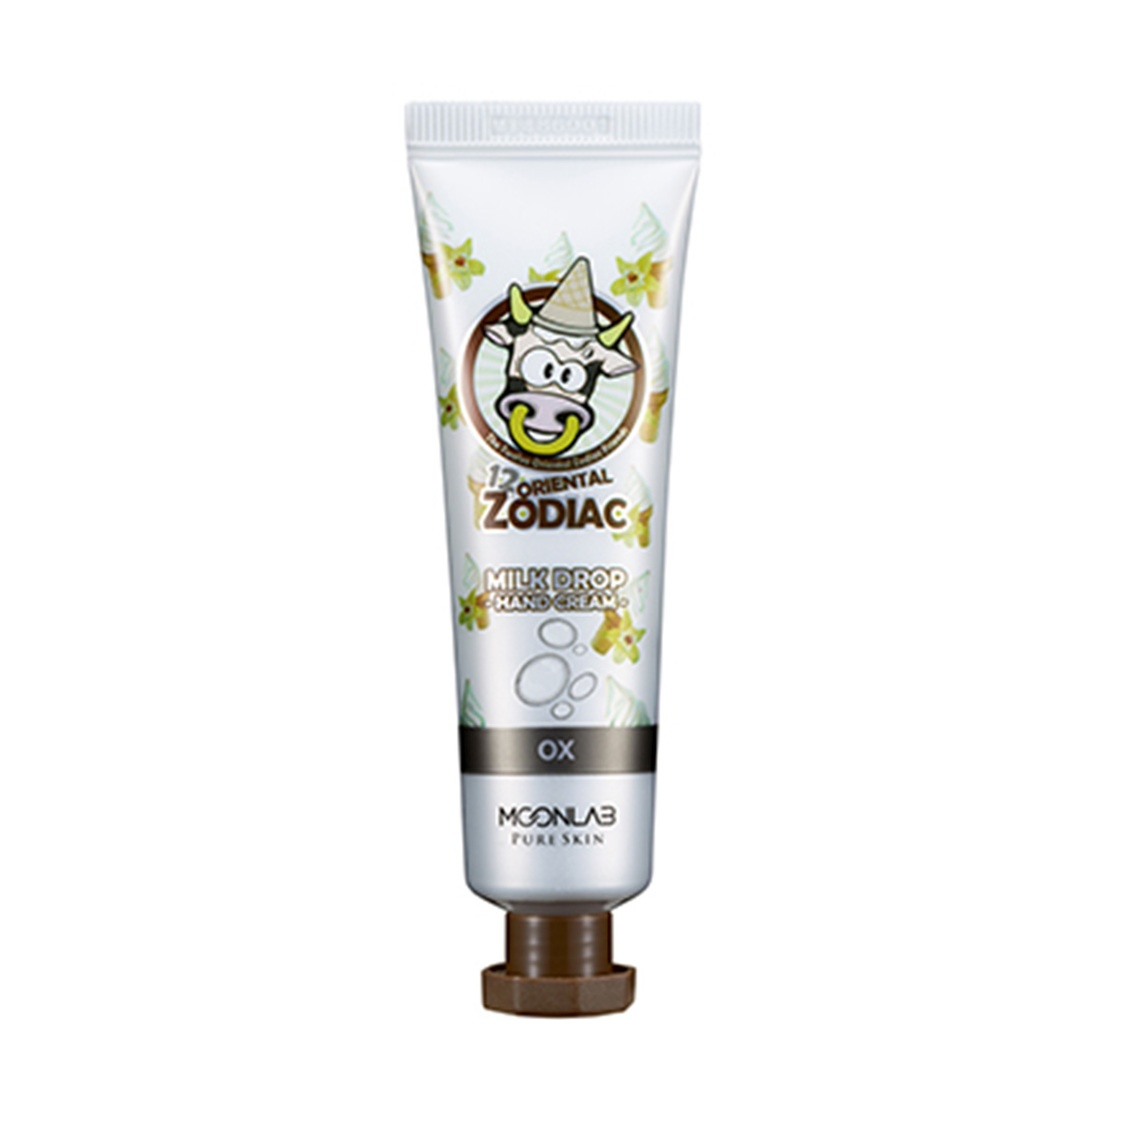 MoonLab Zodiac Handcream 30ml - Cow